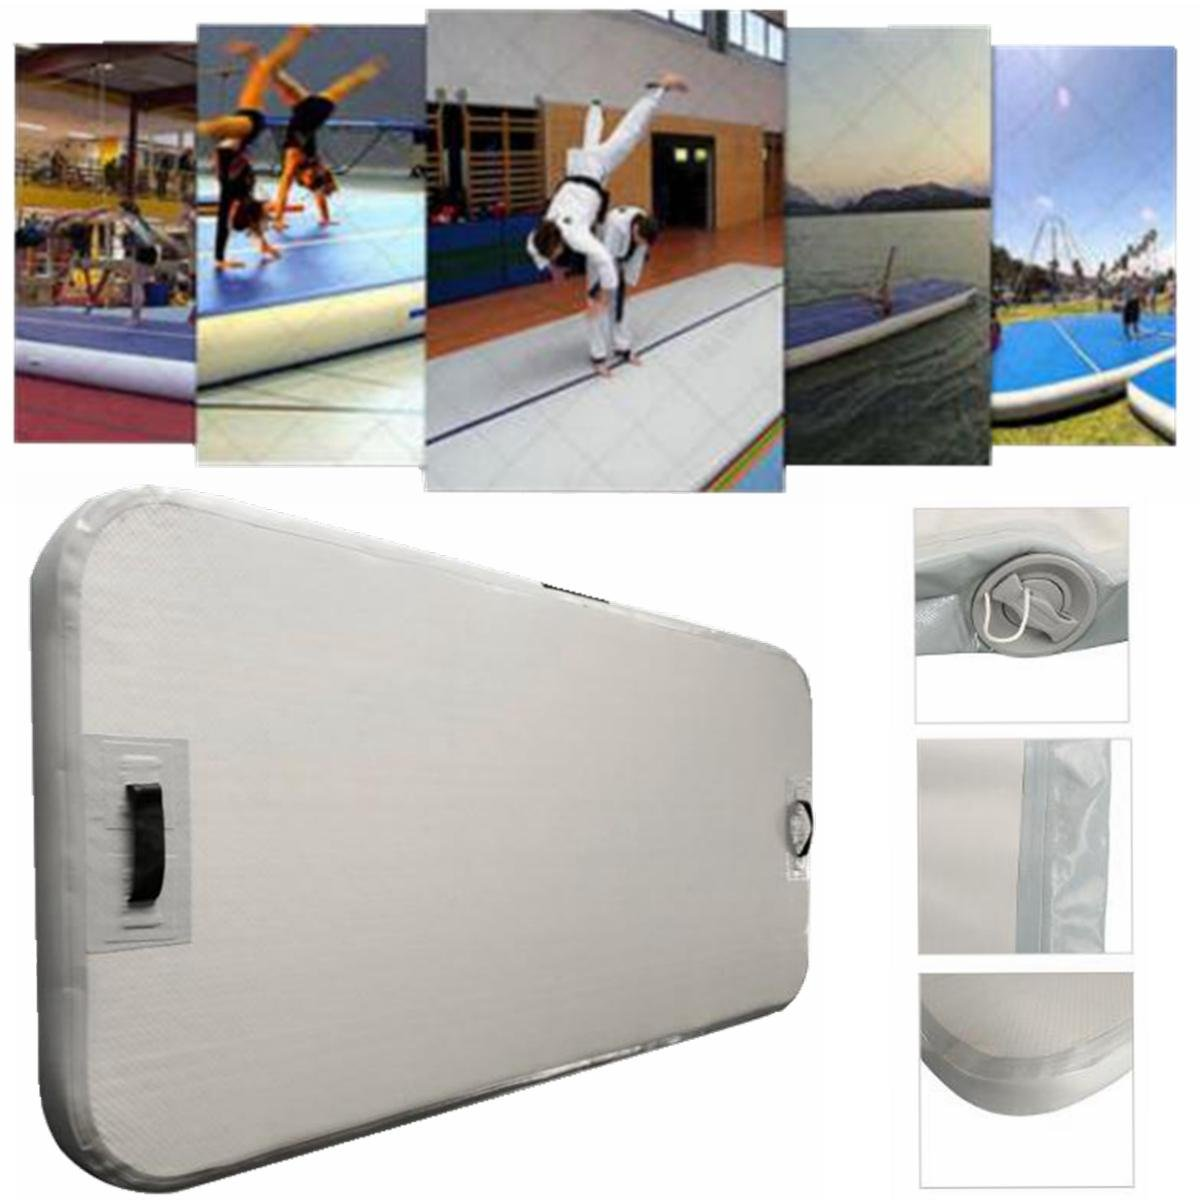 Winnerbe 78.74x35.43x3.94inch GYM Air Track Floor Home Gymnastics Inflatable Tumbling Mat with Electric Pump